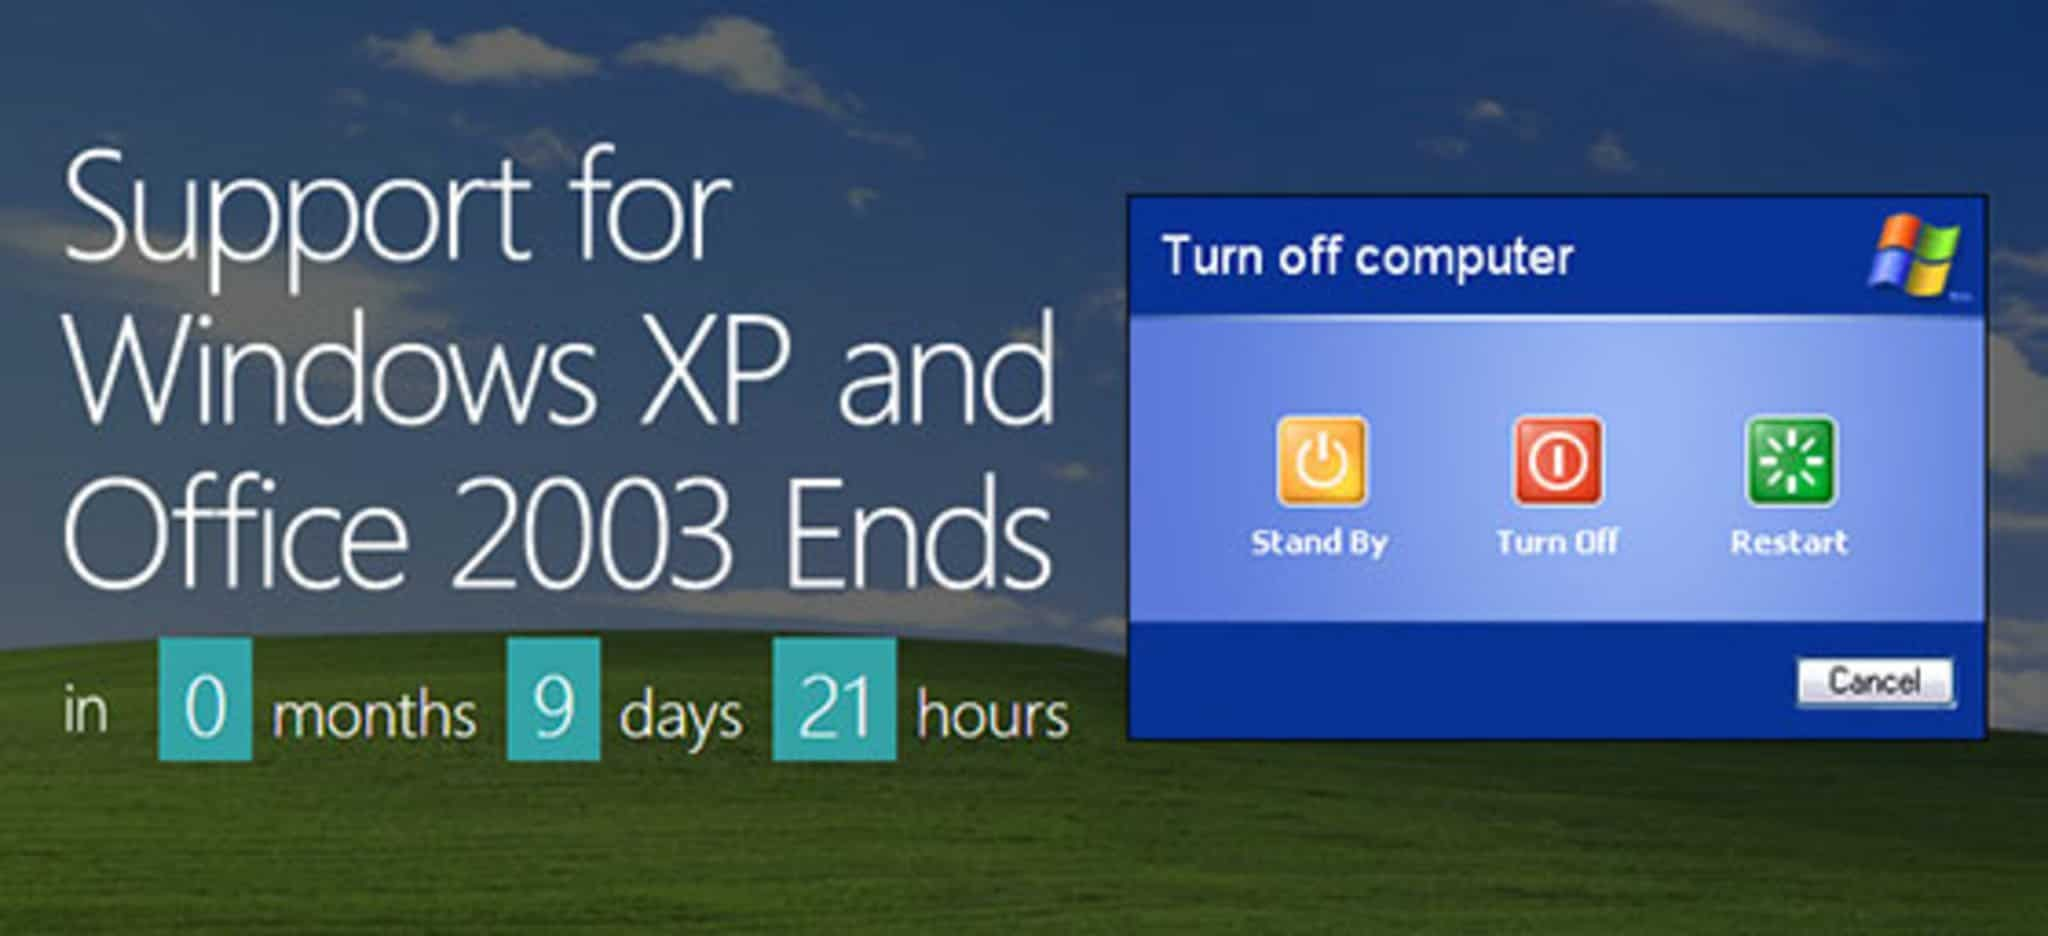 Support for Windows XP ends